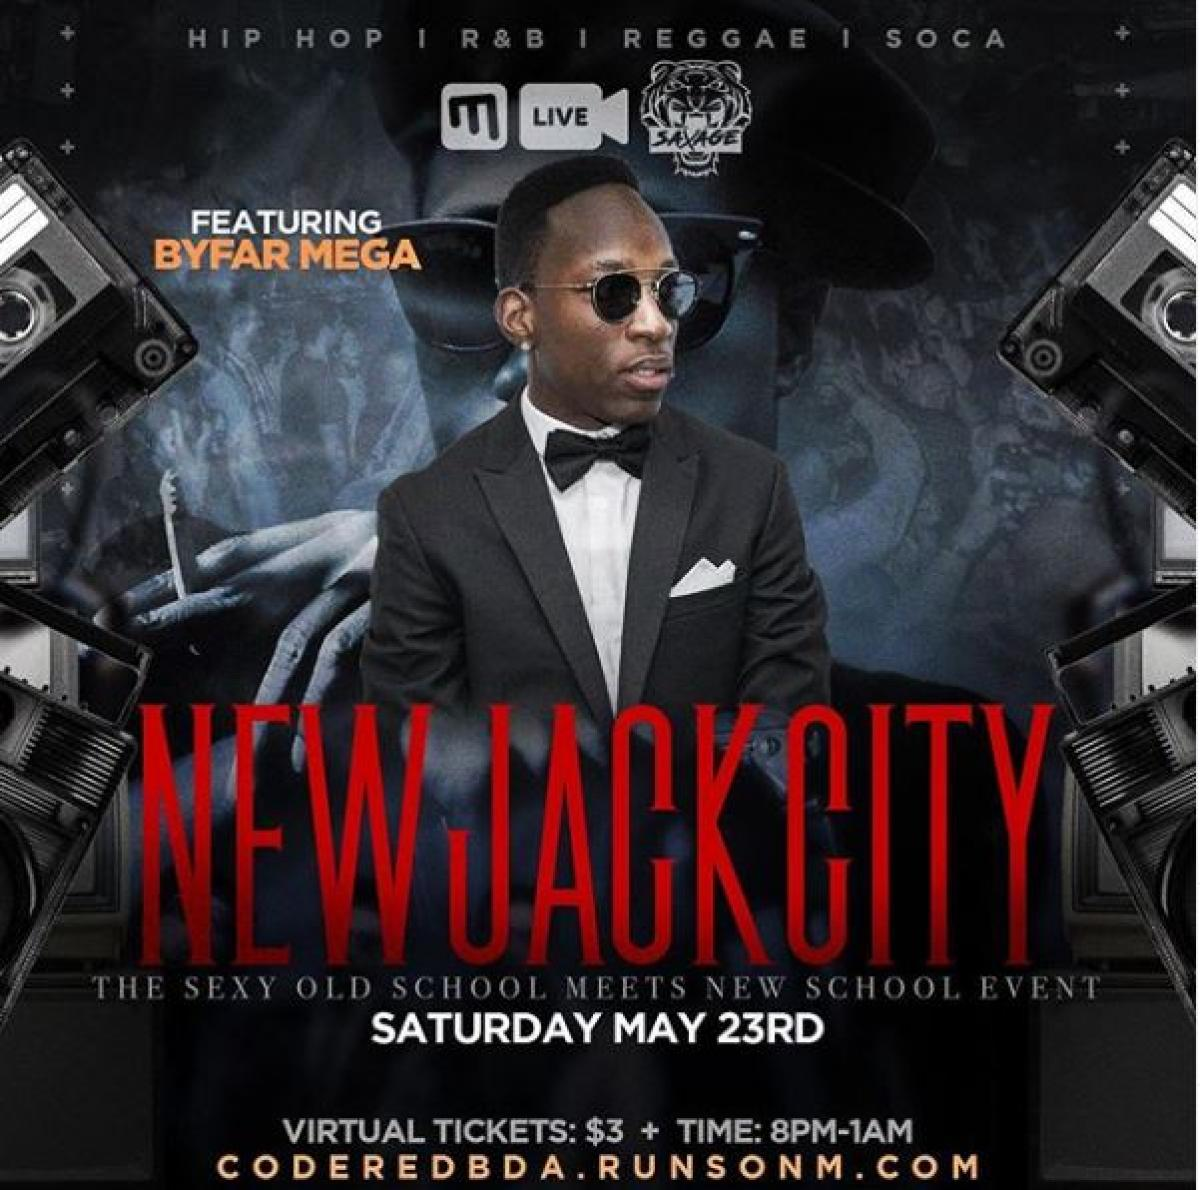 New Jack City flyer or graphic.